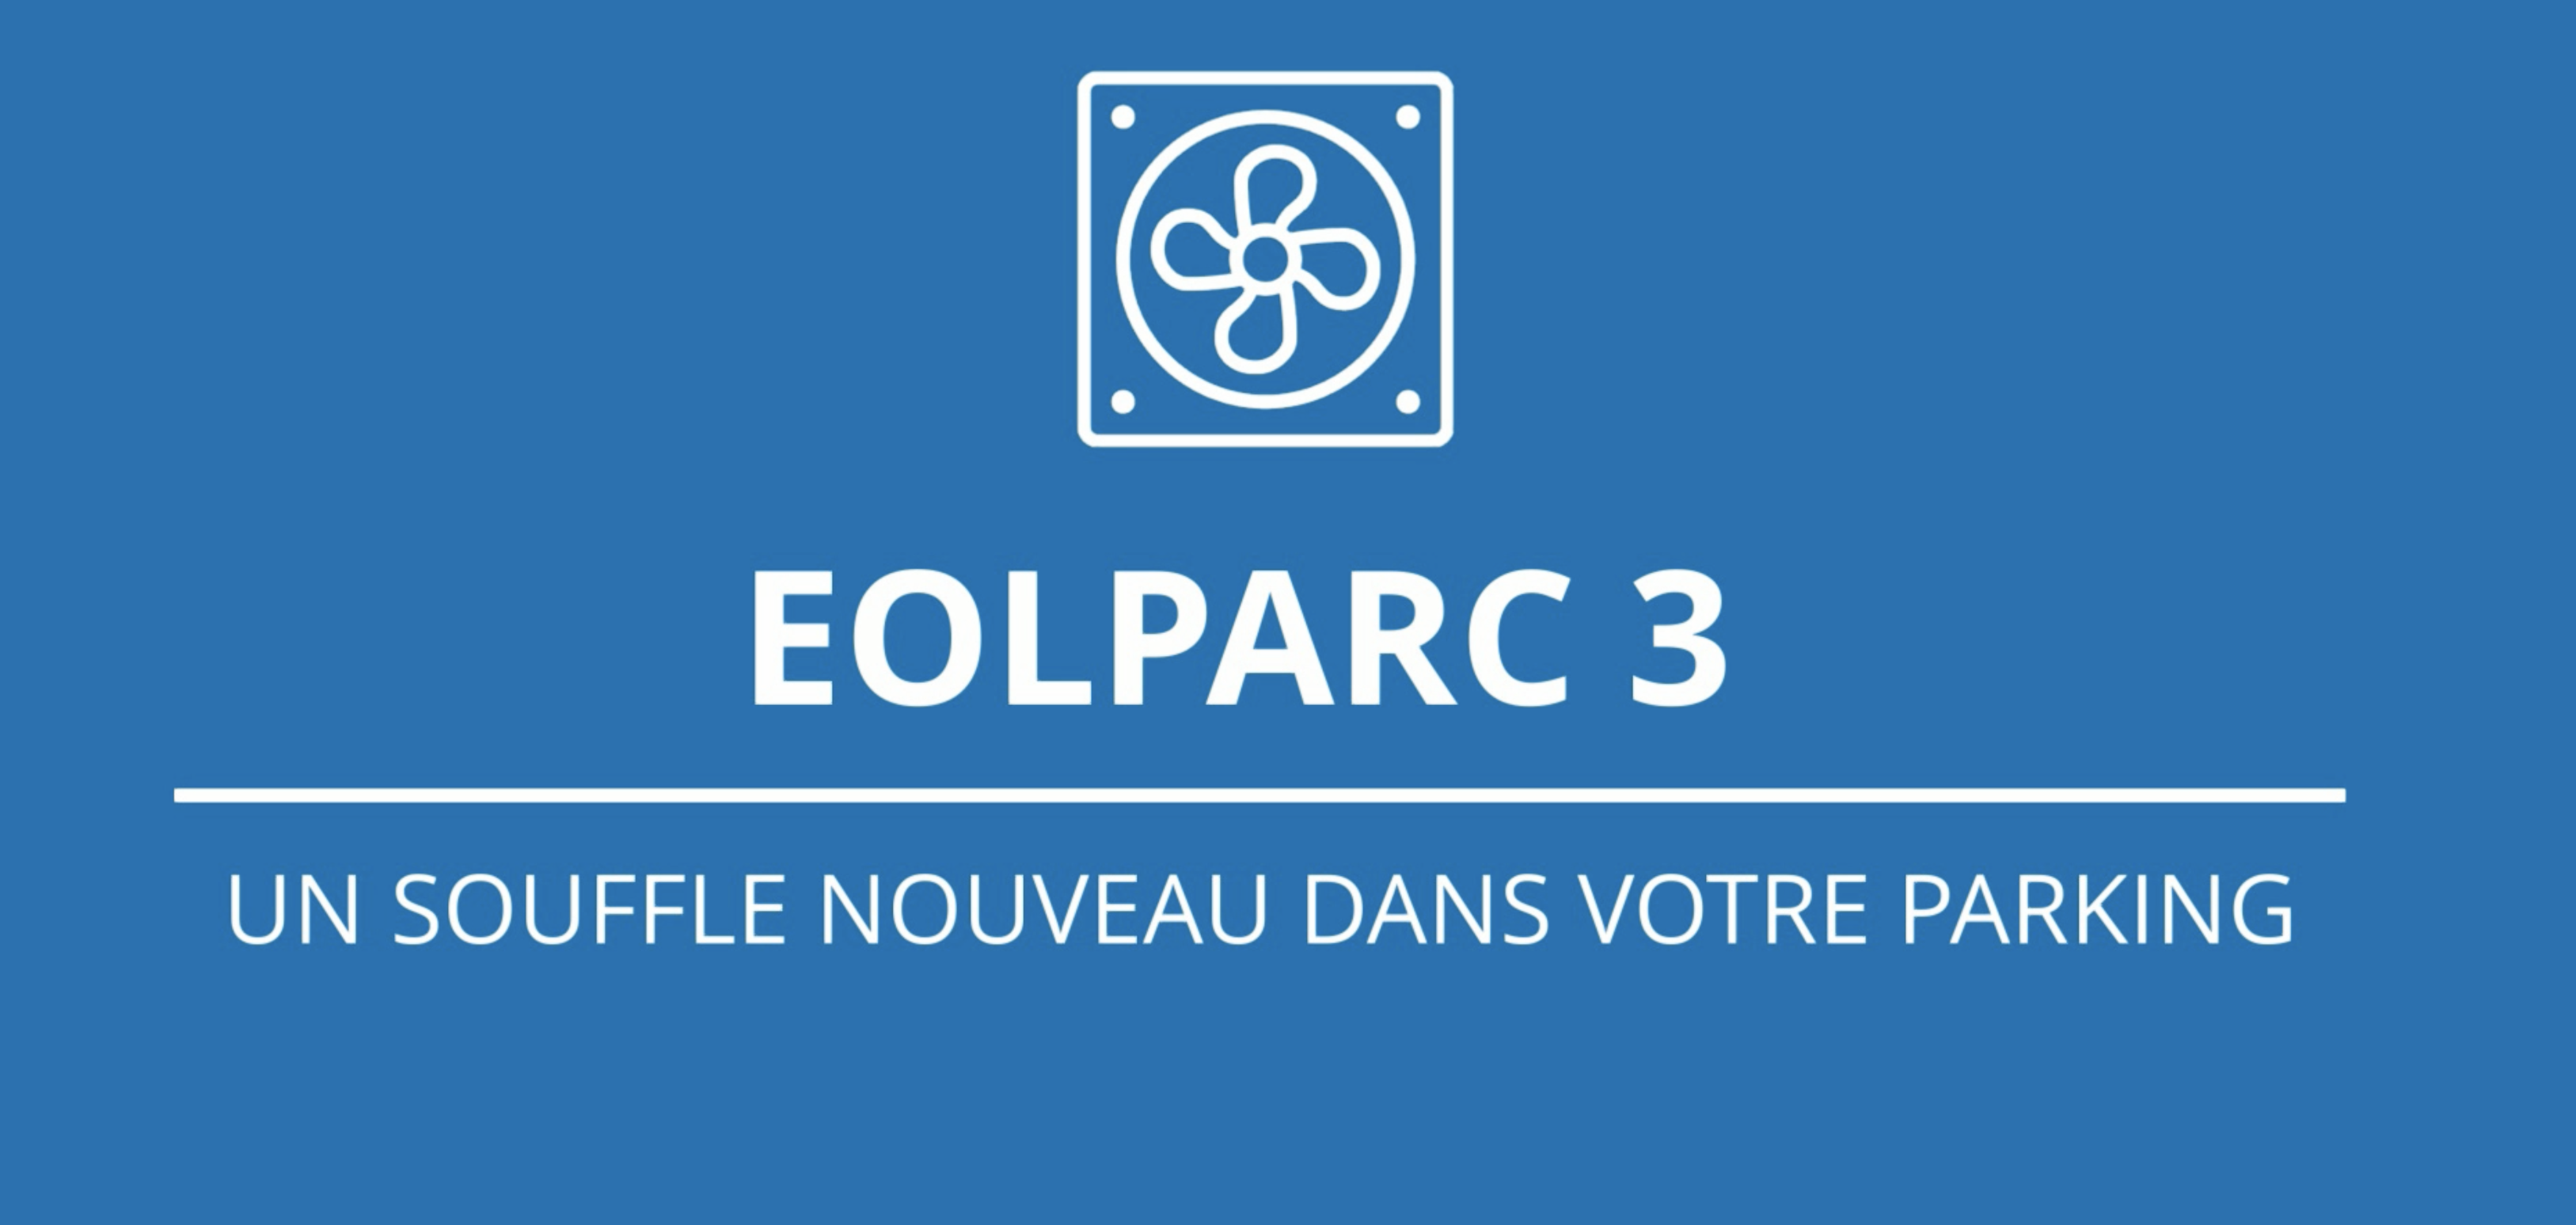 EolParc